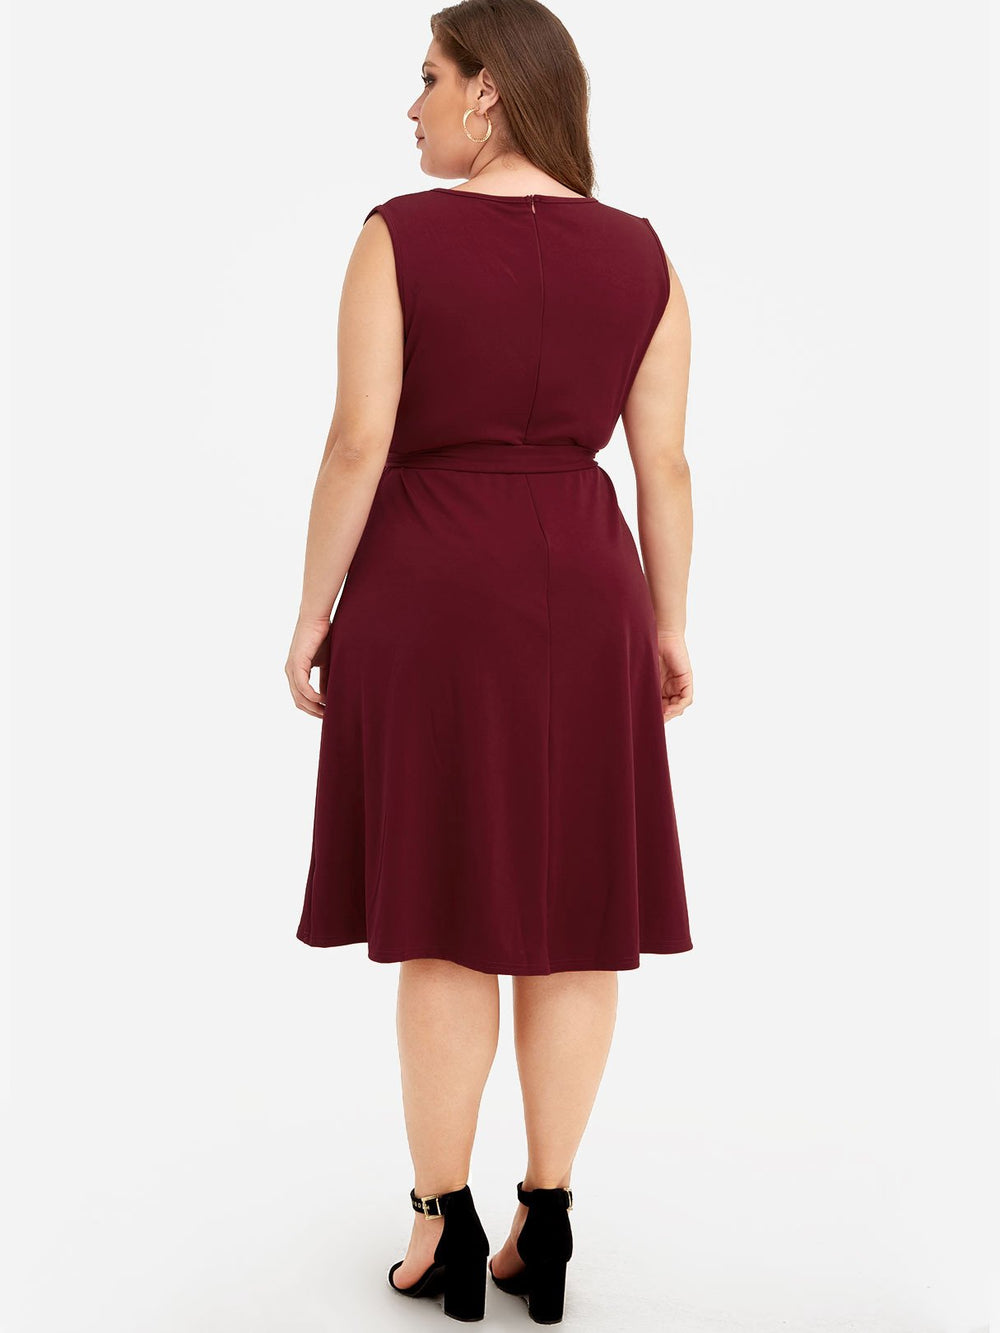 Summer Plus Size Casual Dresses